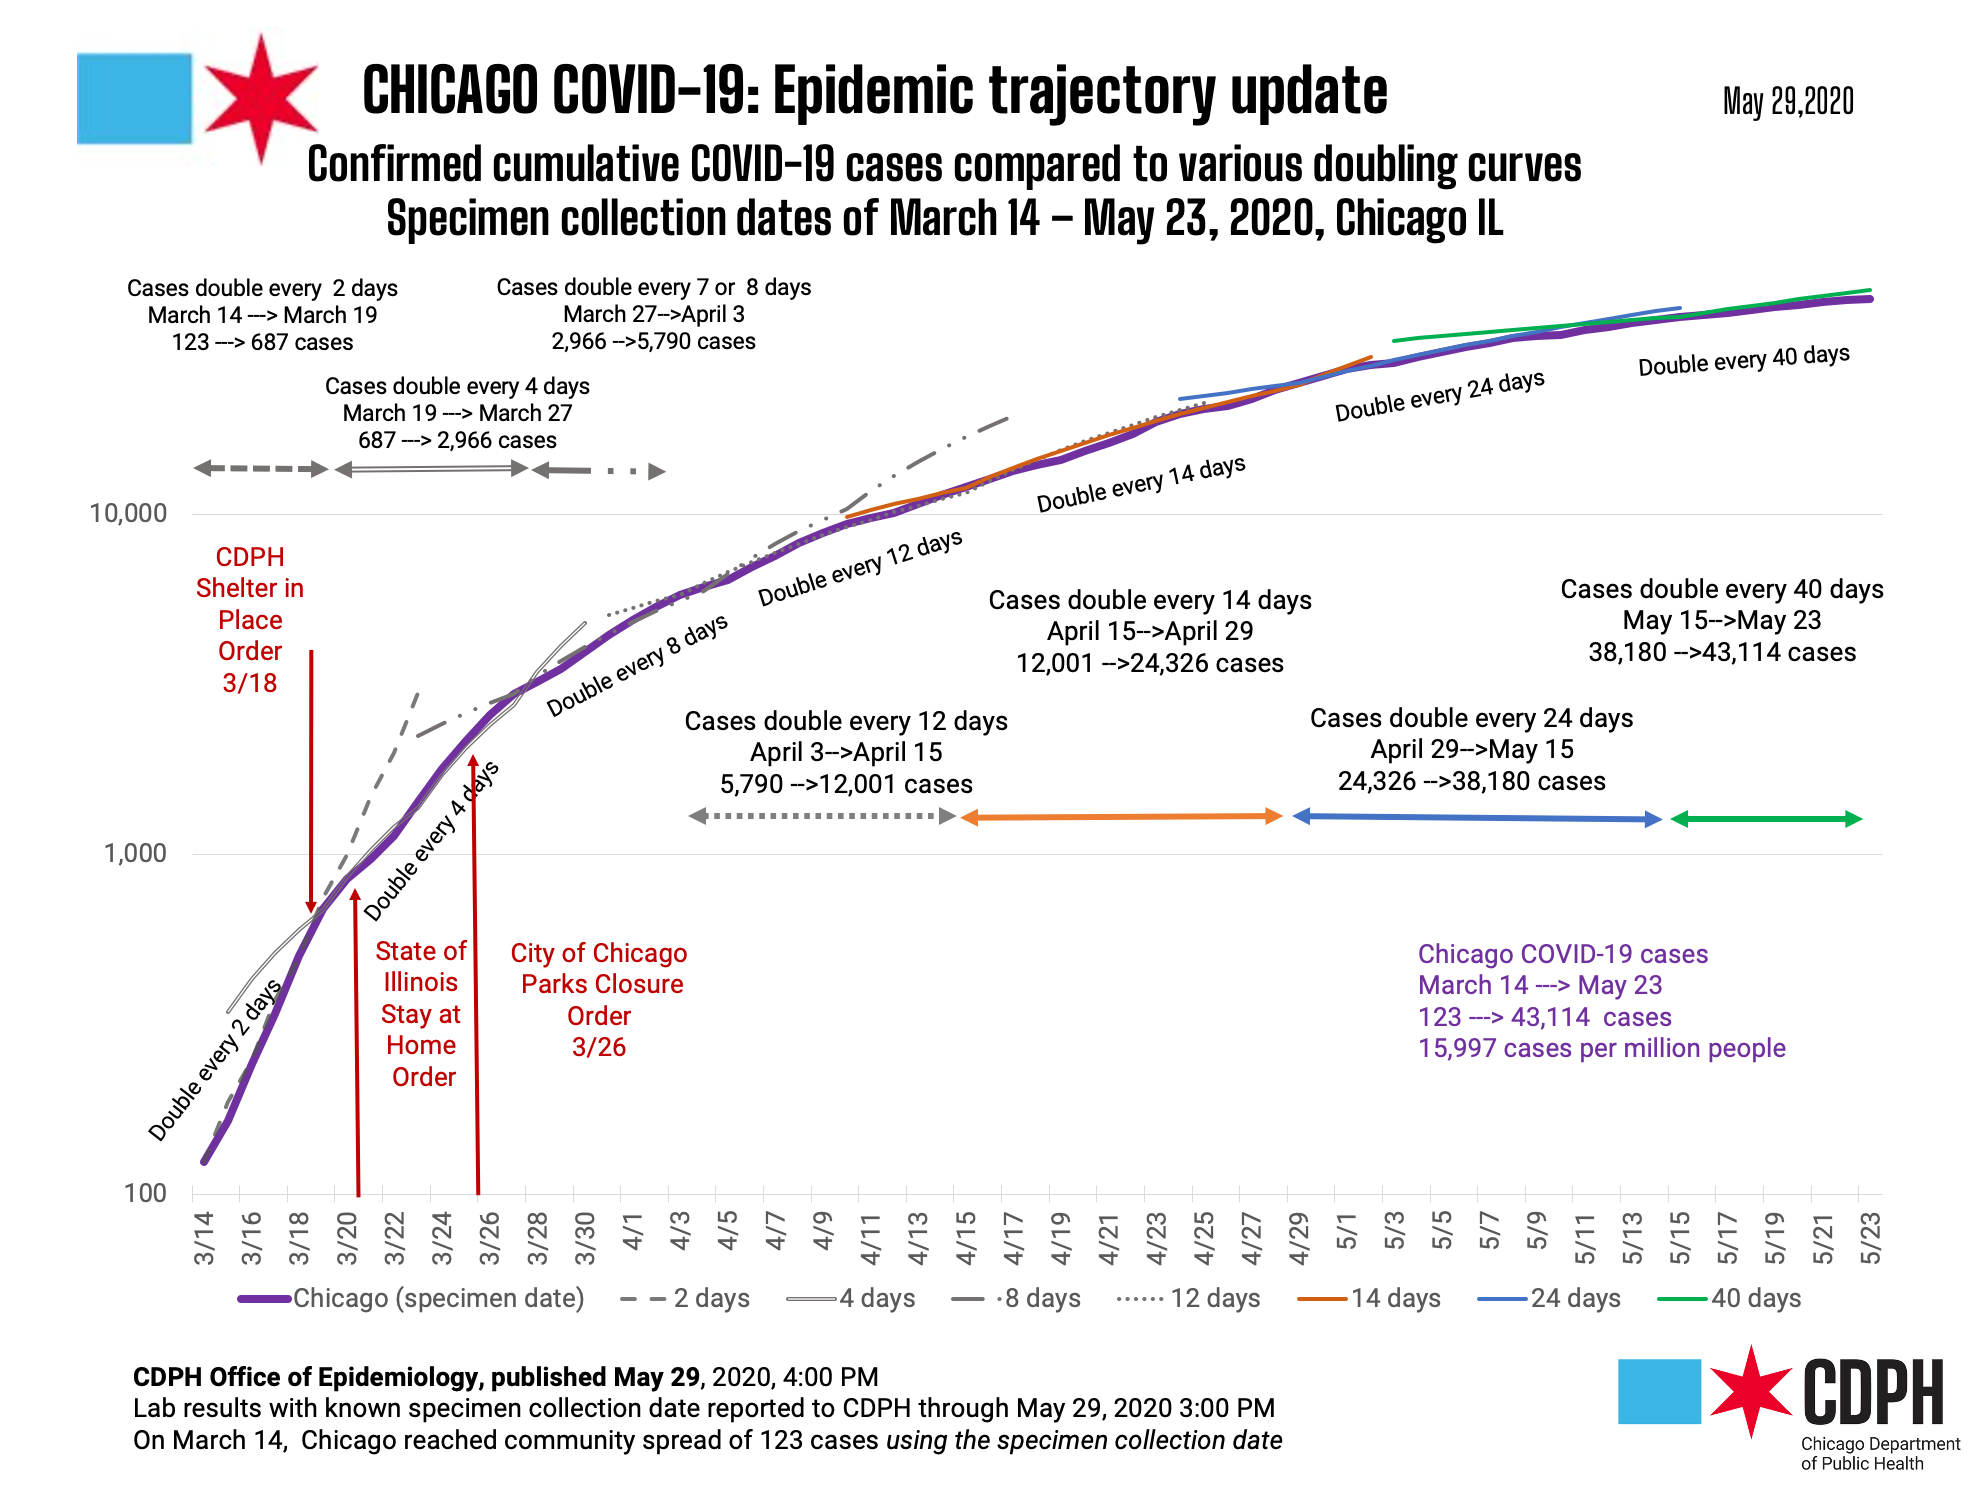 Chicago COVID Epidemic Trajectory Update